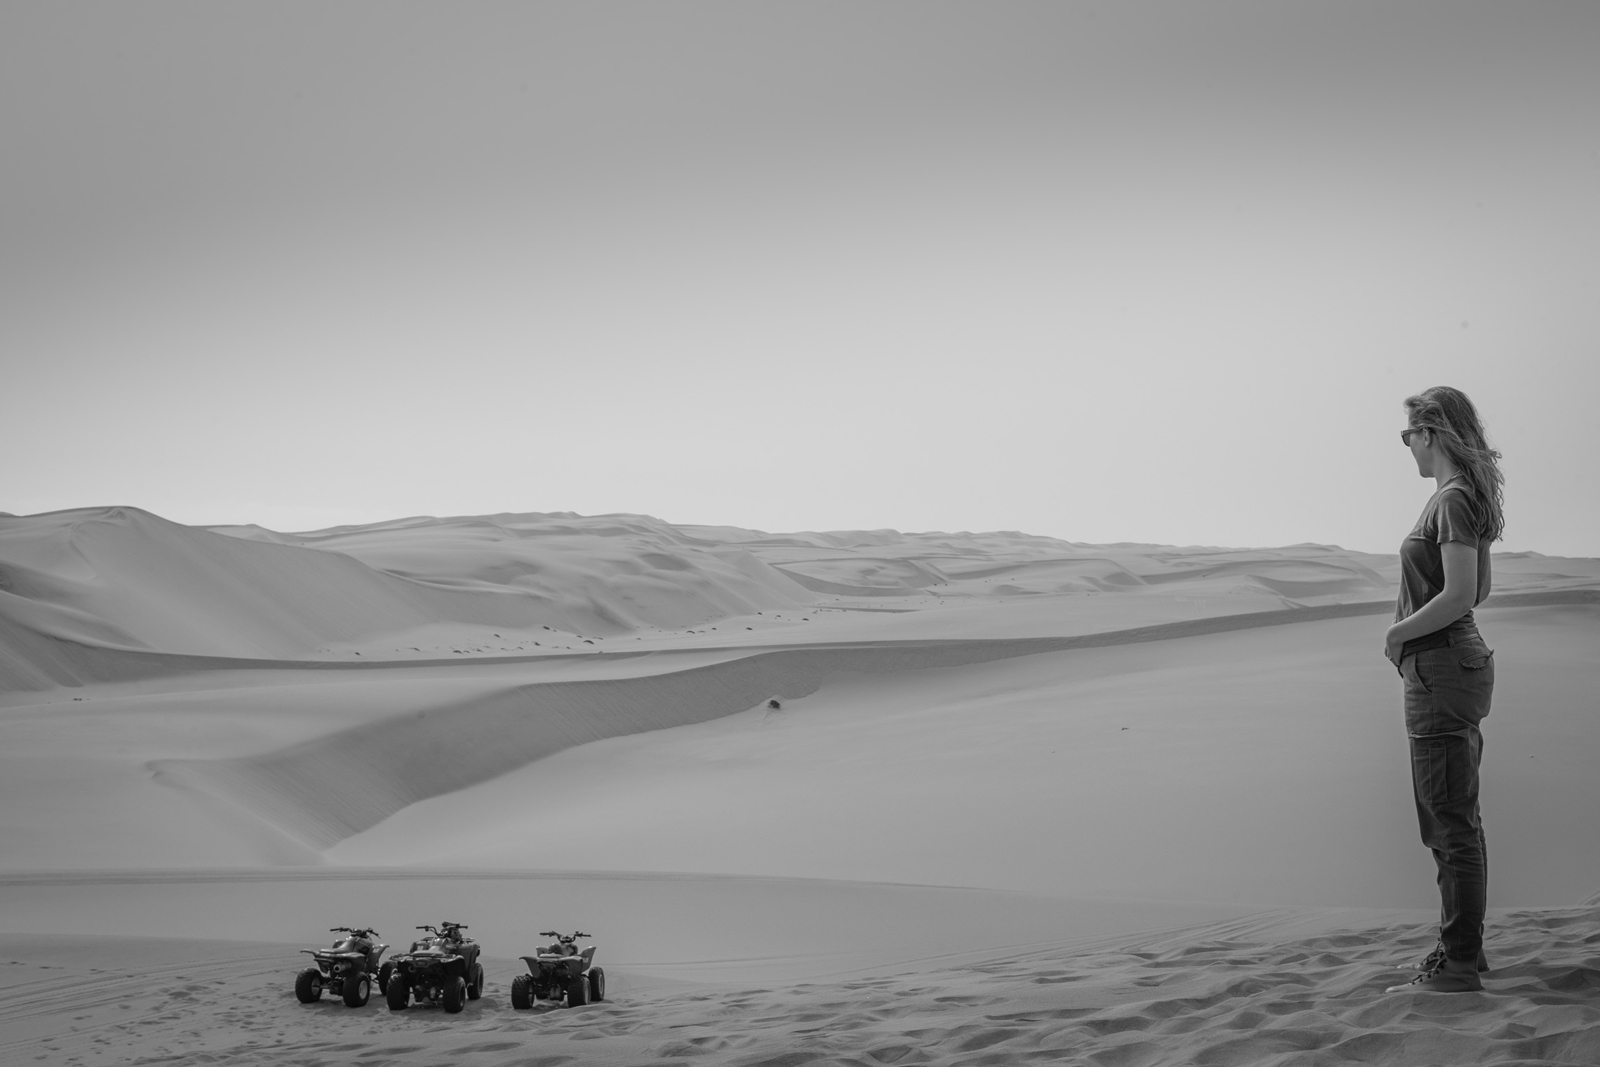 Quadbiking near Namibia's adventure capital, Swakopmund